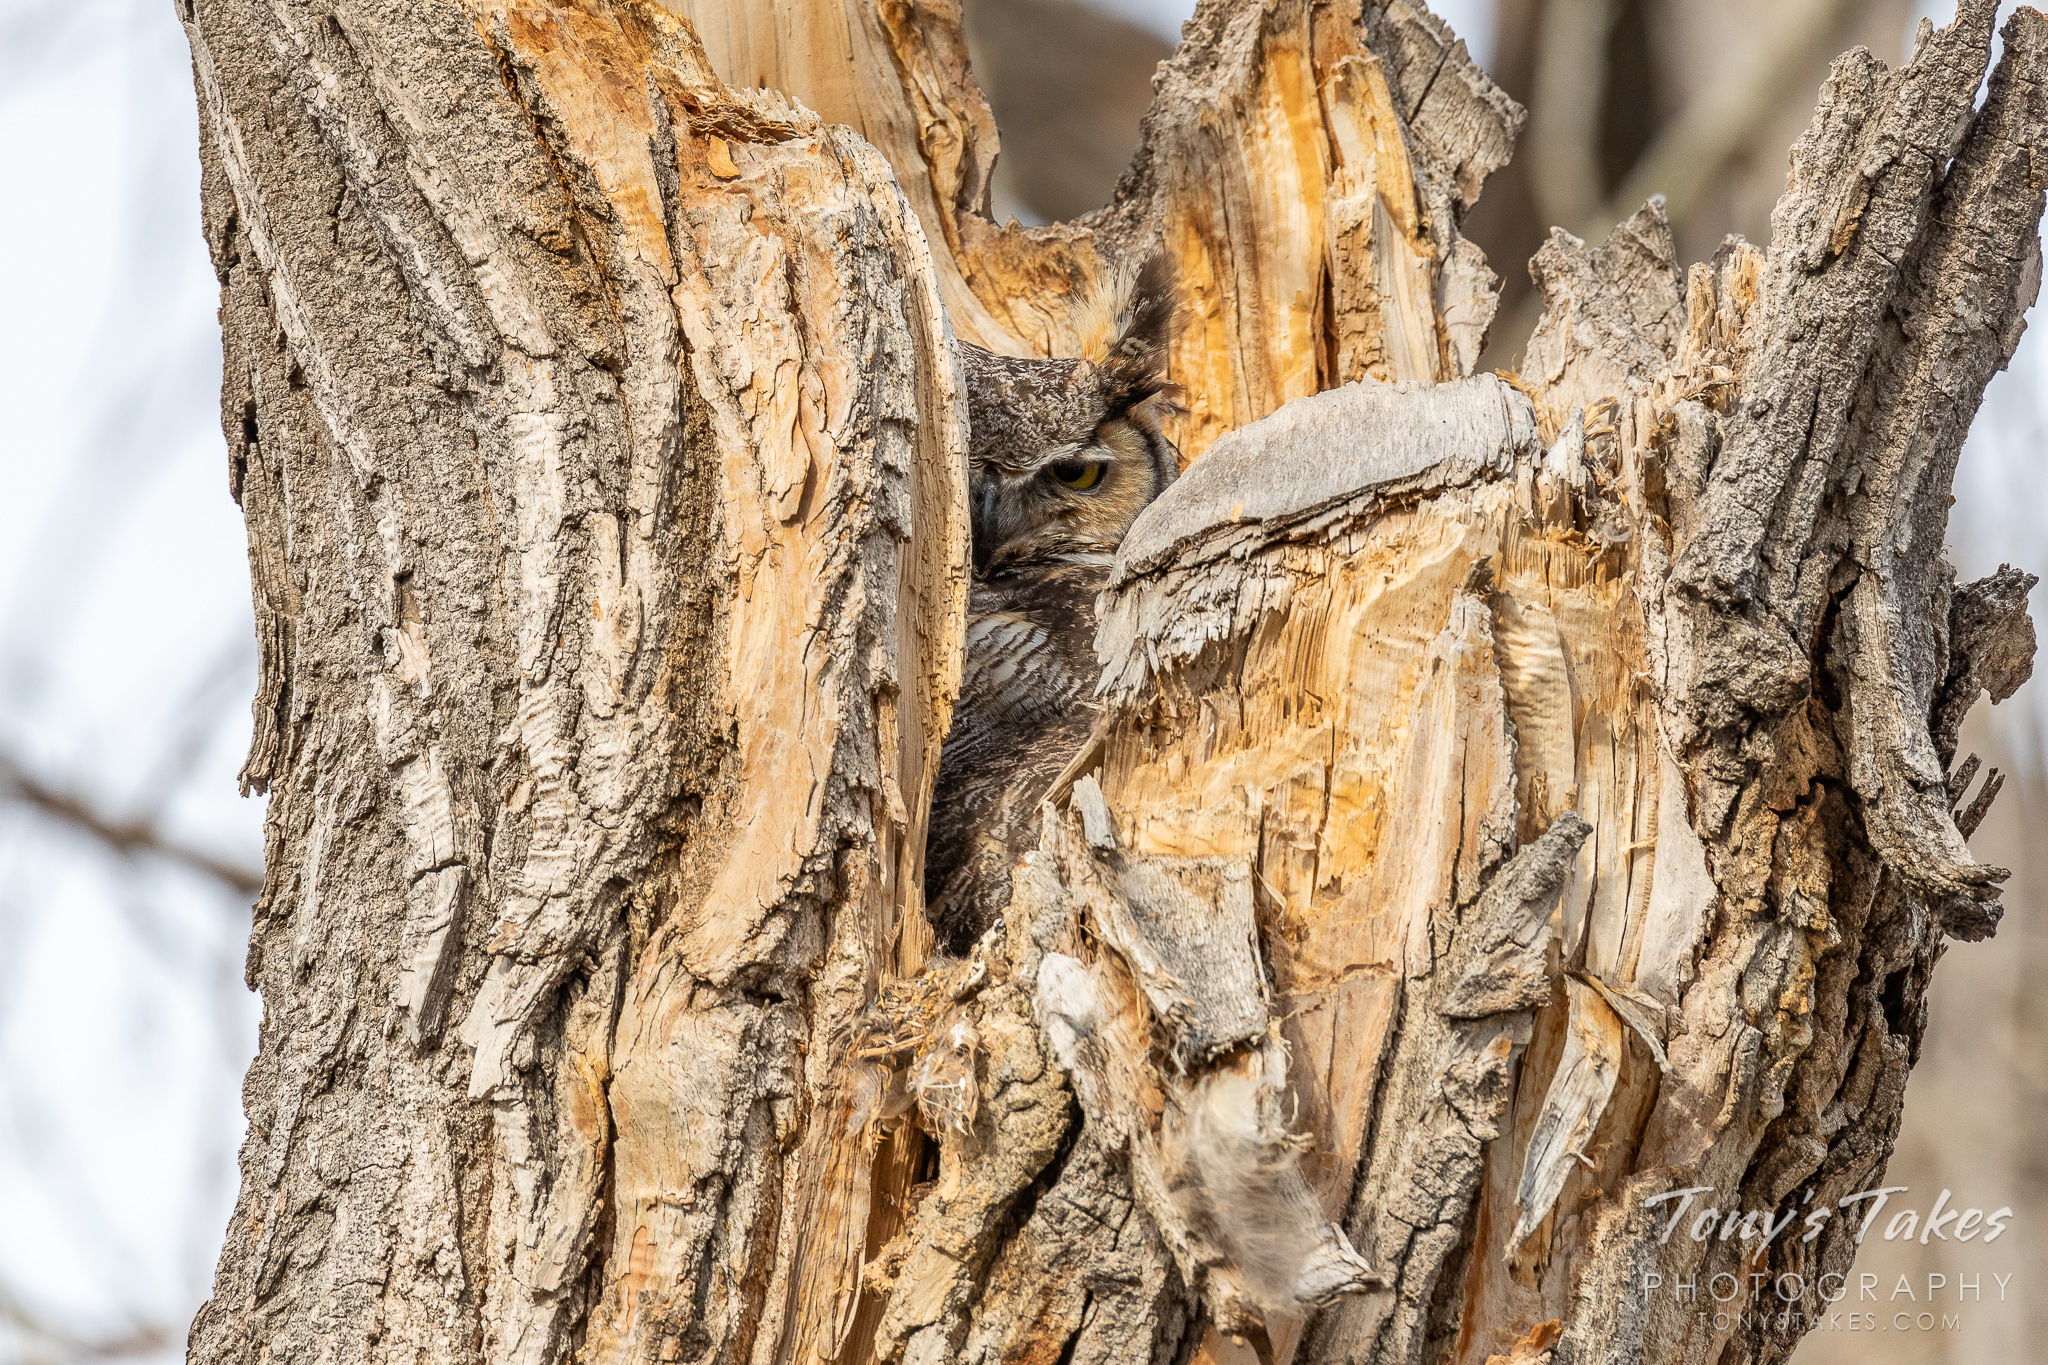 A female great horned owl peers out from her nest within a tree cavity in Thornton, Colorado. (© Tony's Takes)